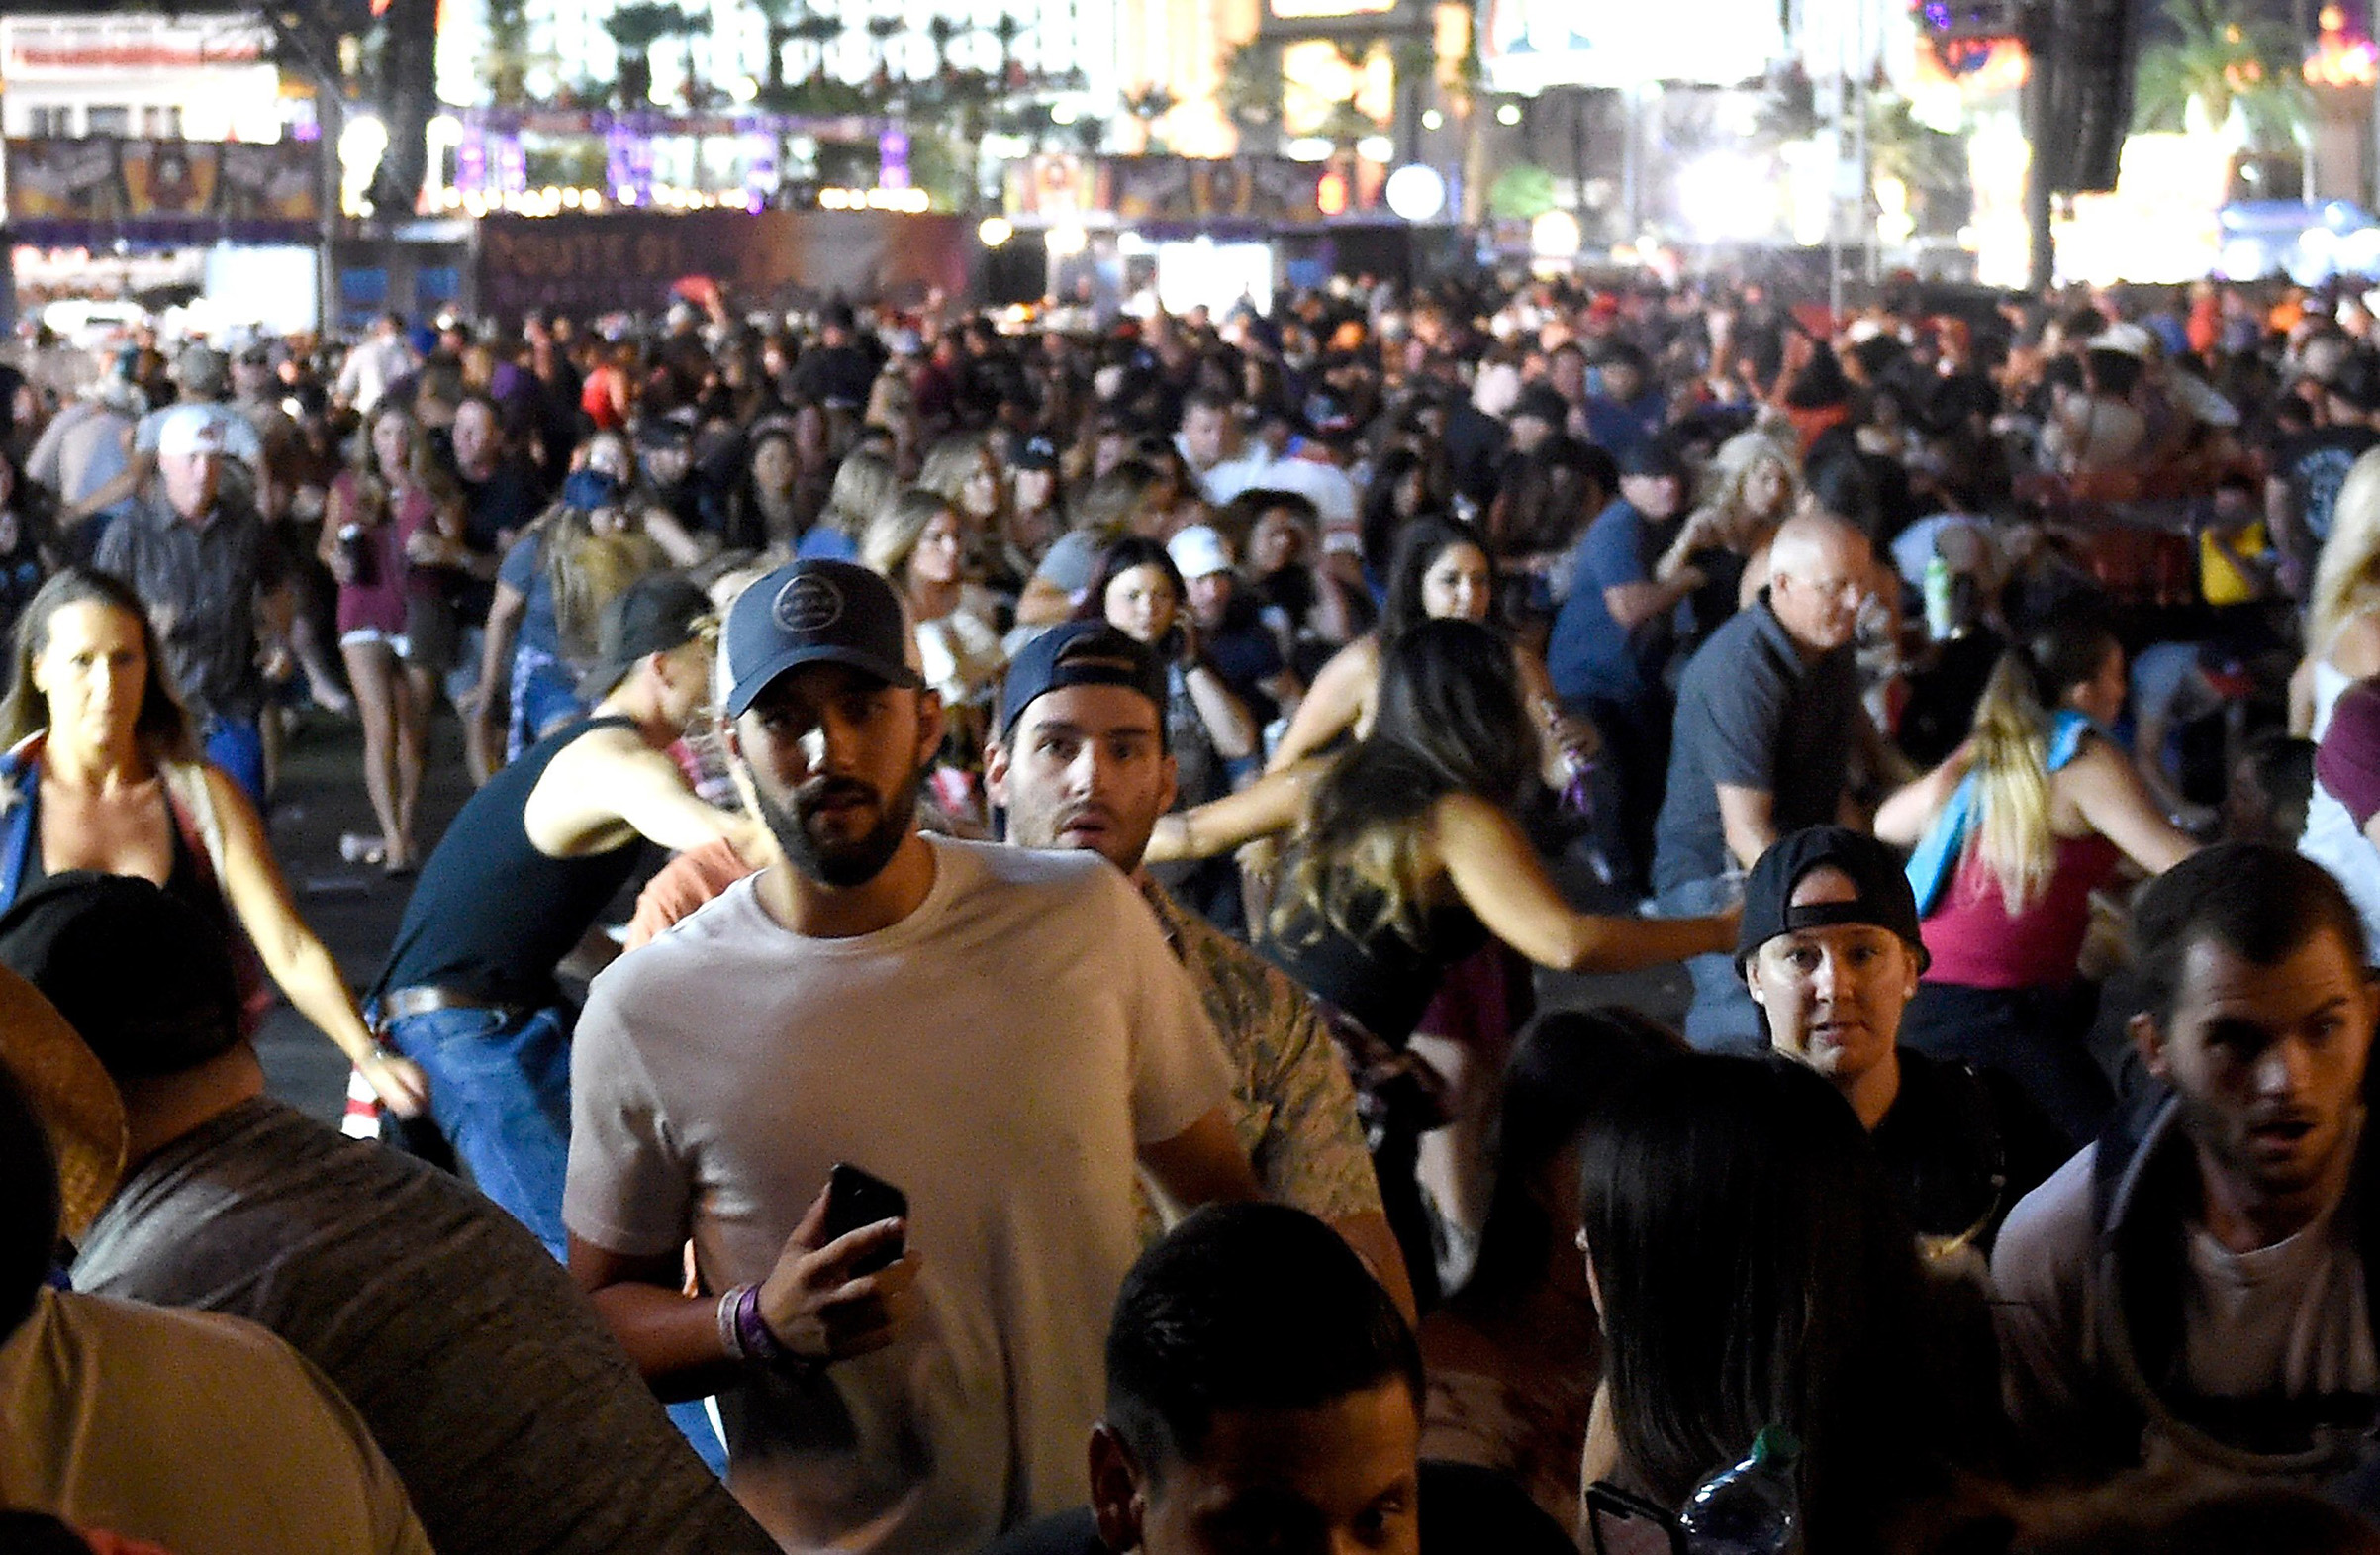 People flee the Route 91 Harvest country music festival grounds after apparent gun fire was heard, Oct. 1, 2017 in Las Vegas.